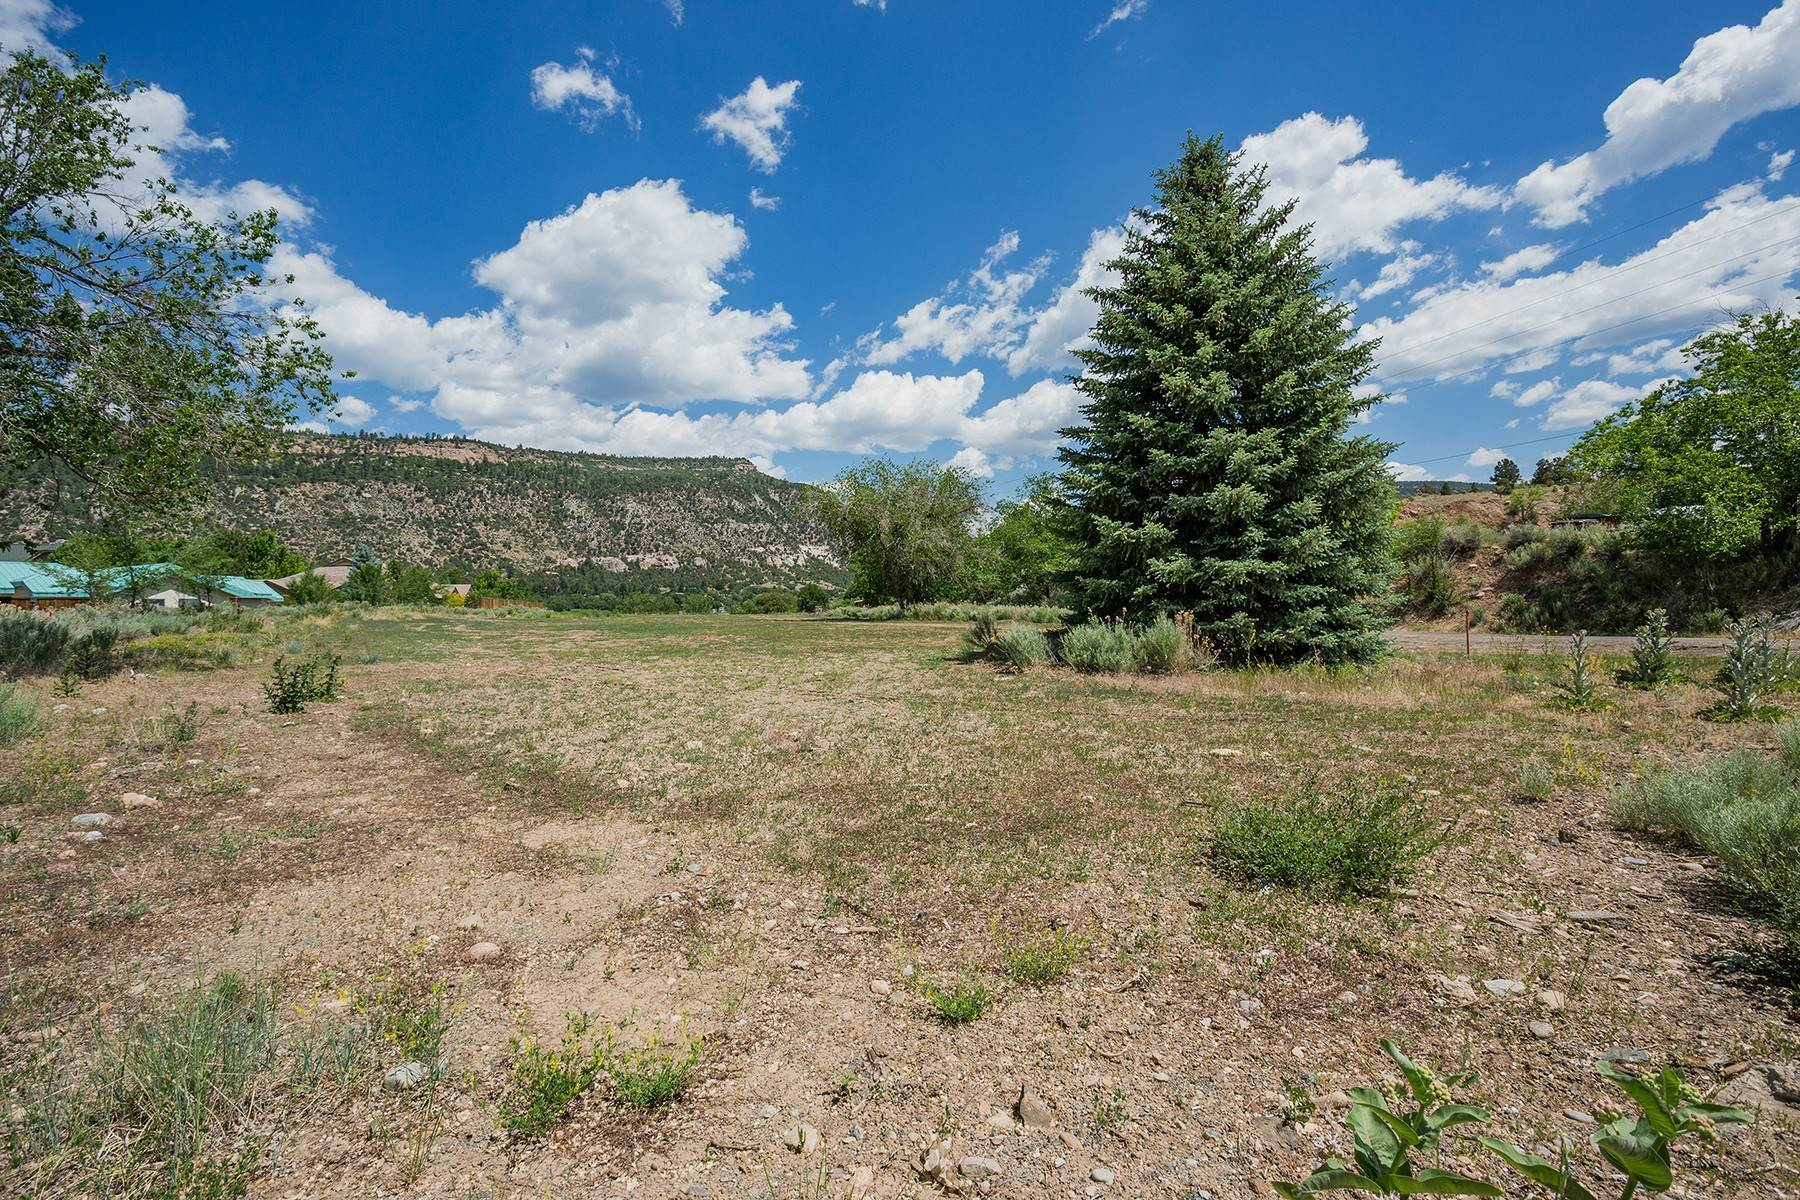 Land for Sale at Lot 5, Homesites at Eight Twenty One Lot 5, 821 E 32nd Street Durango, Colorado 81301 United States